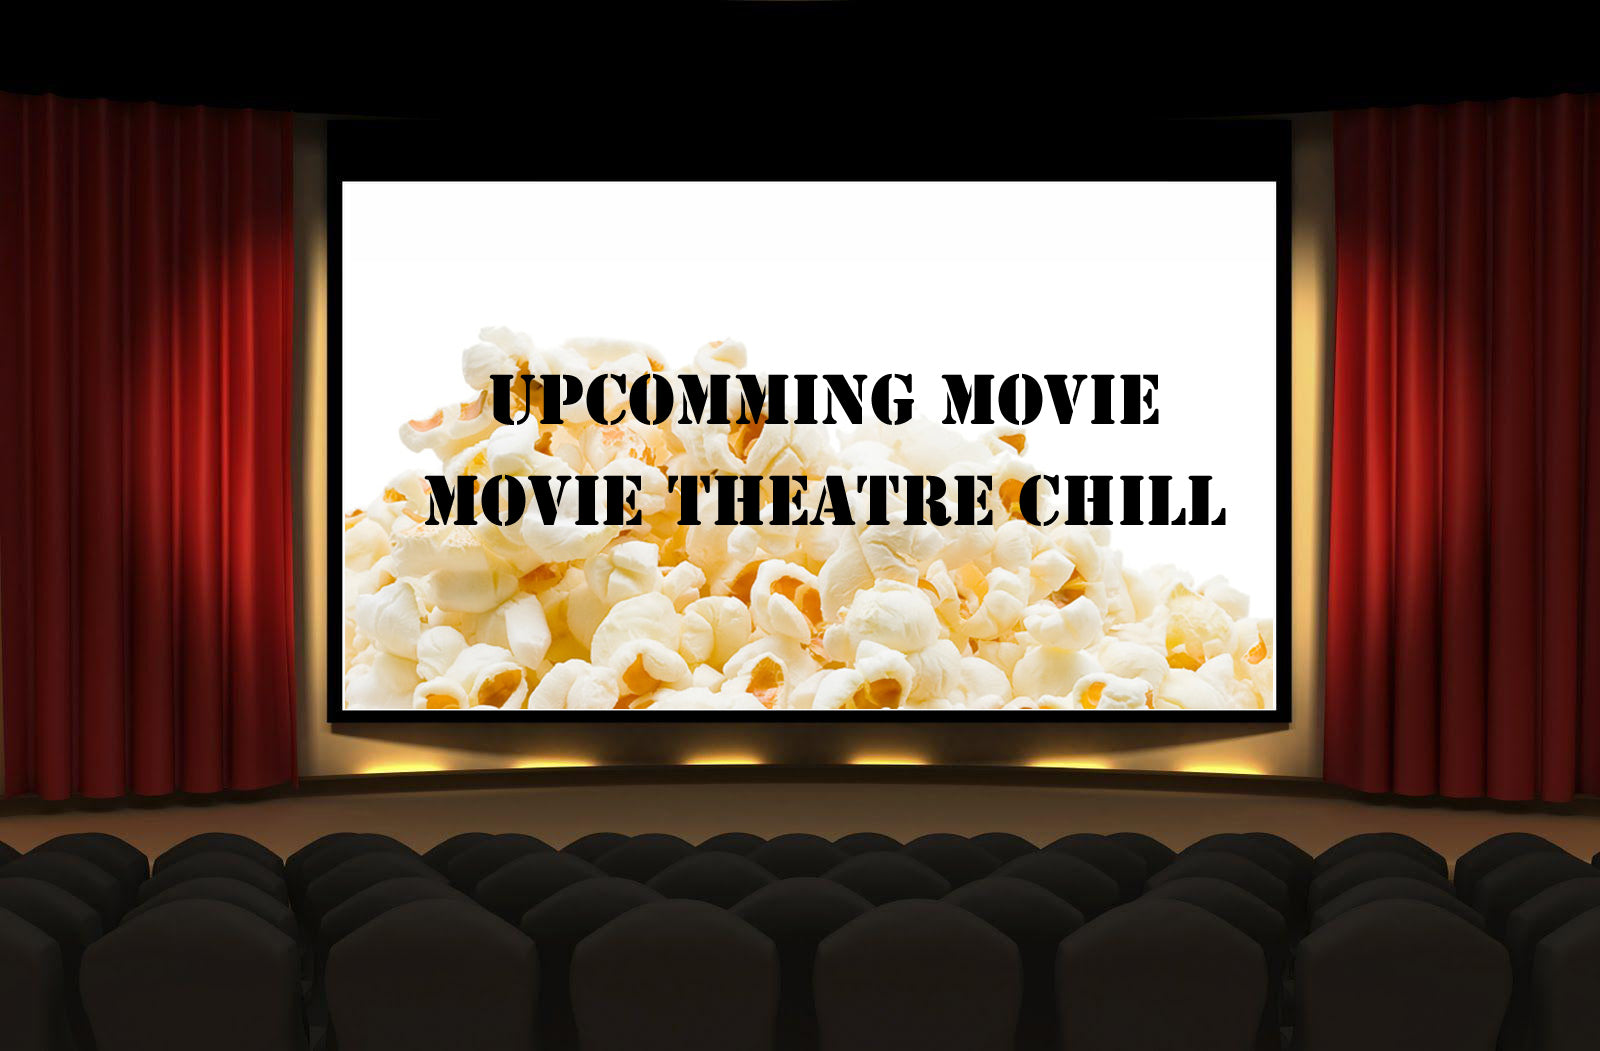 Movie Theatre Chill - Popcorn Movie Theatre & Butter Cream